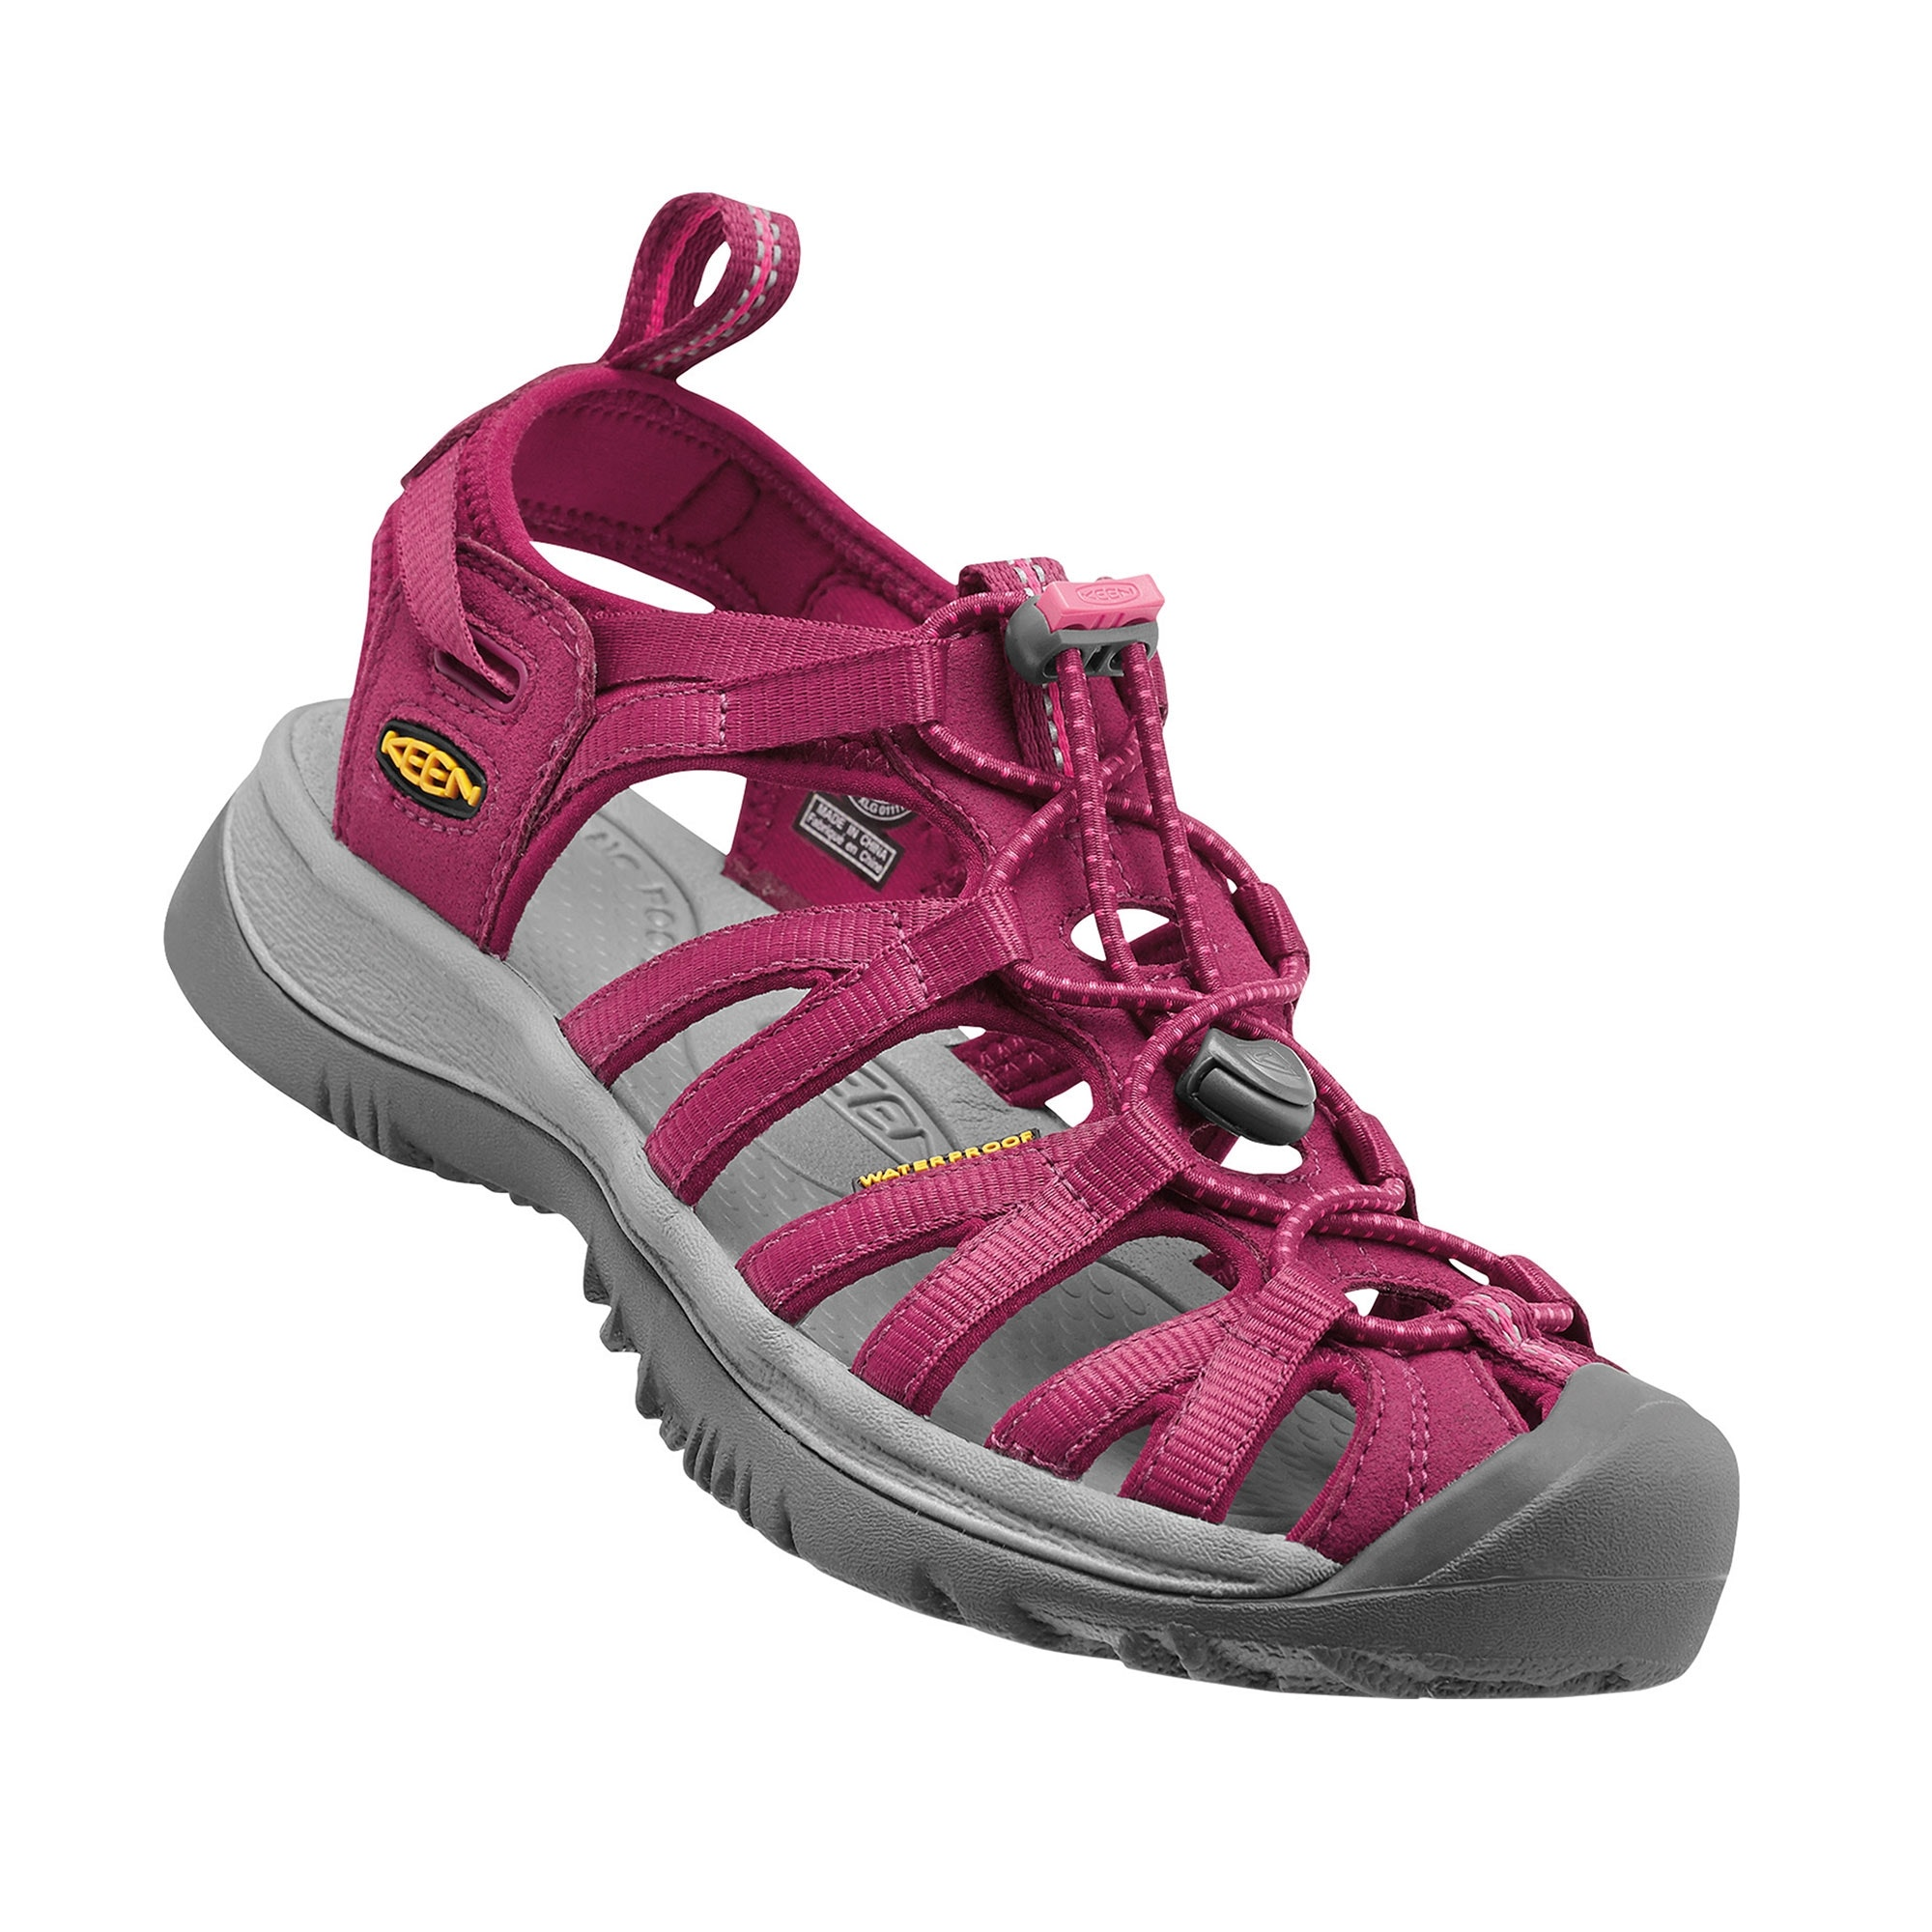 3cf1420234a072 Keen Whisper Womens - Brindle Regal Orchid